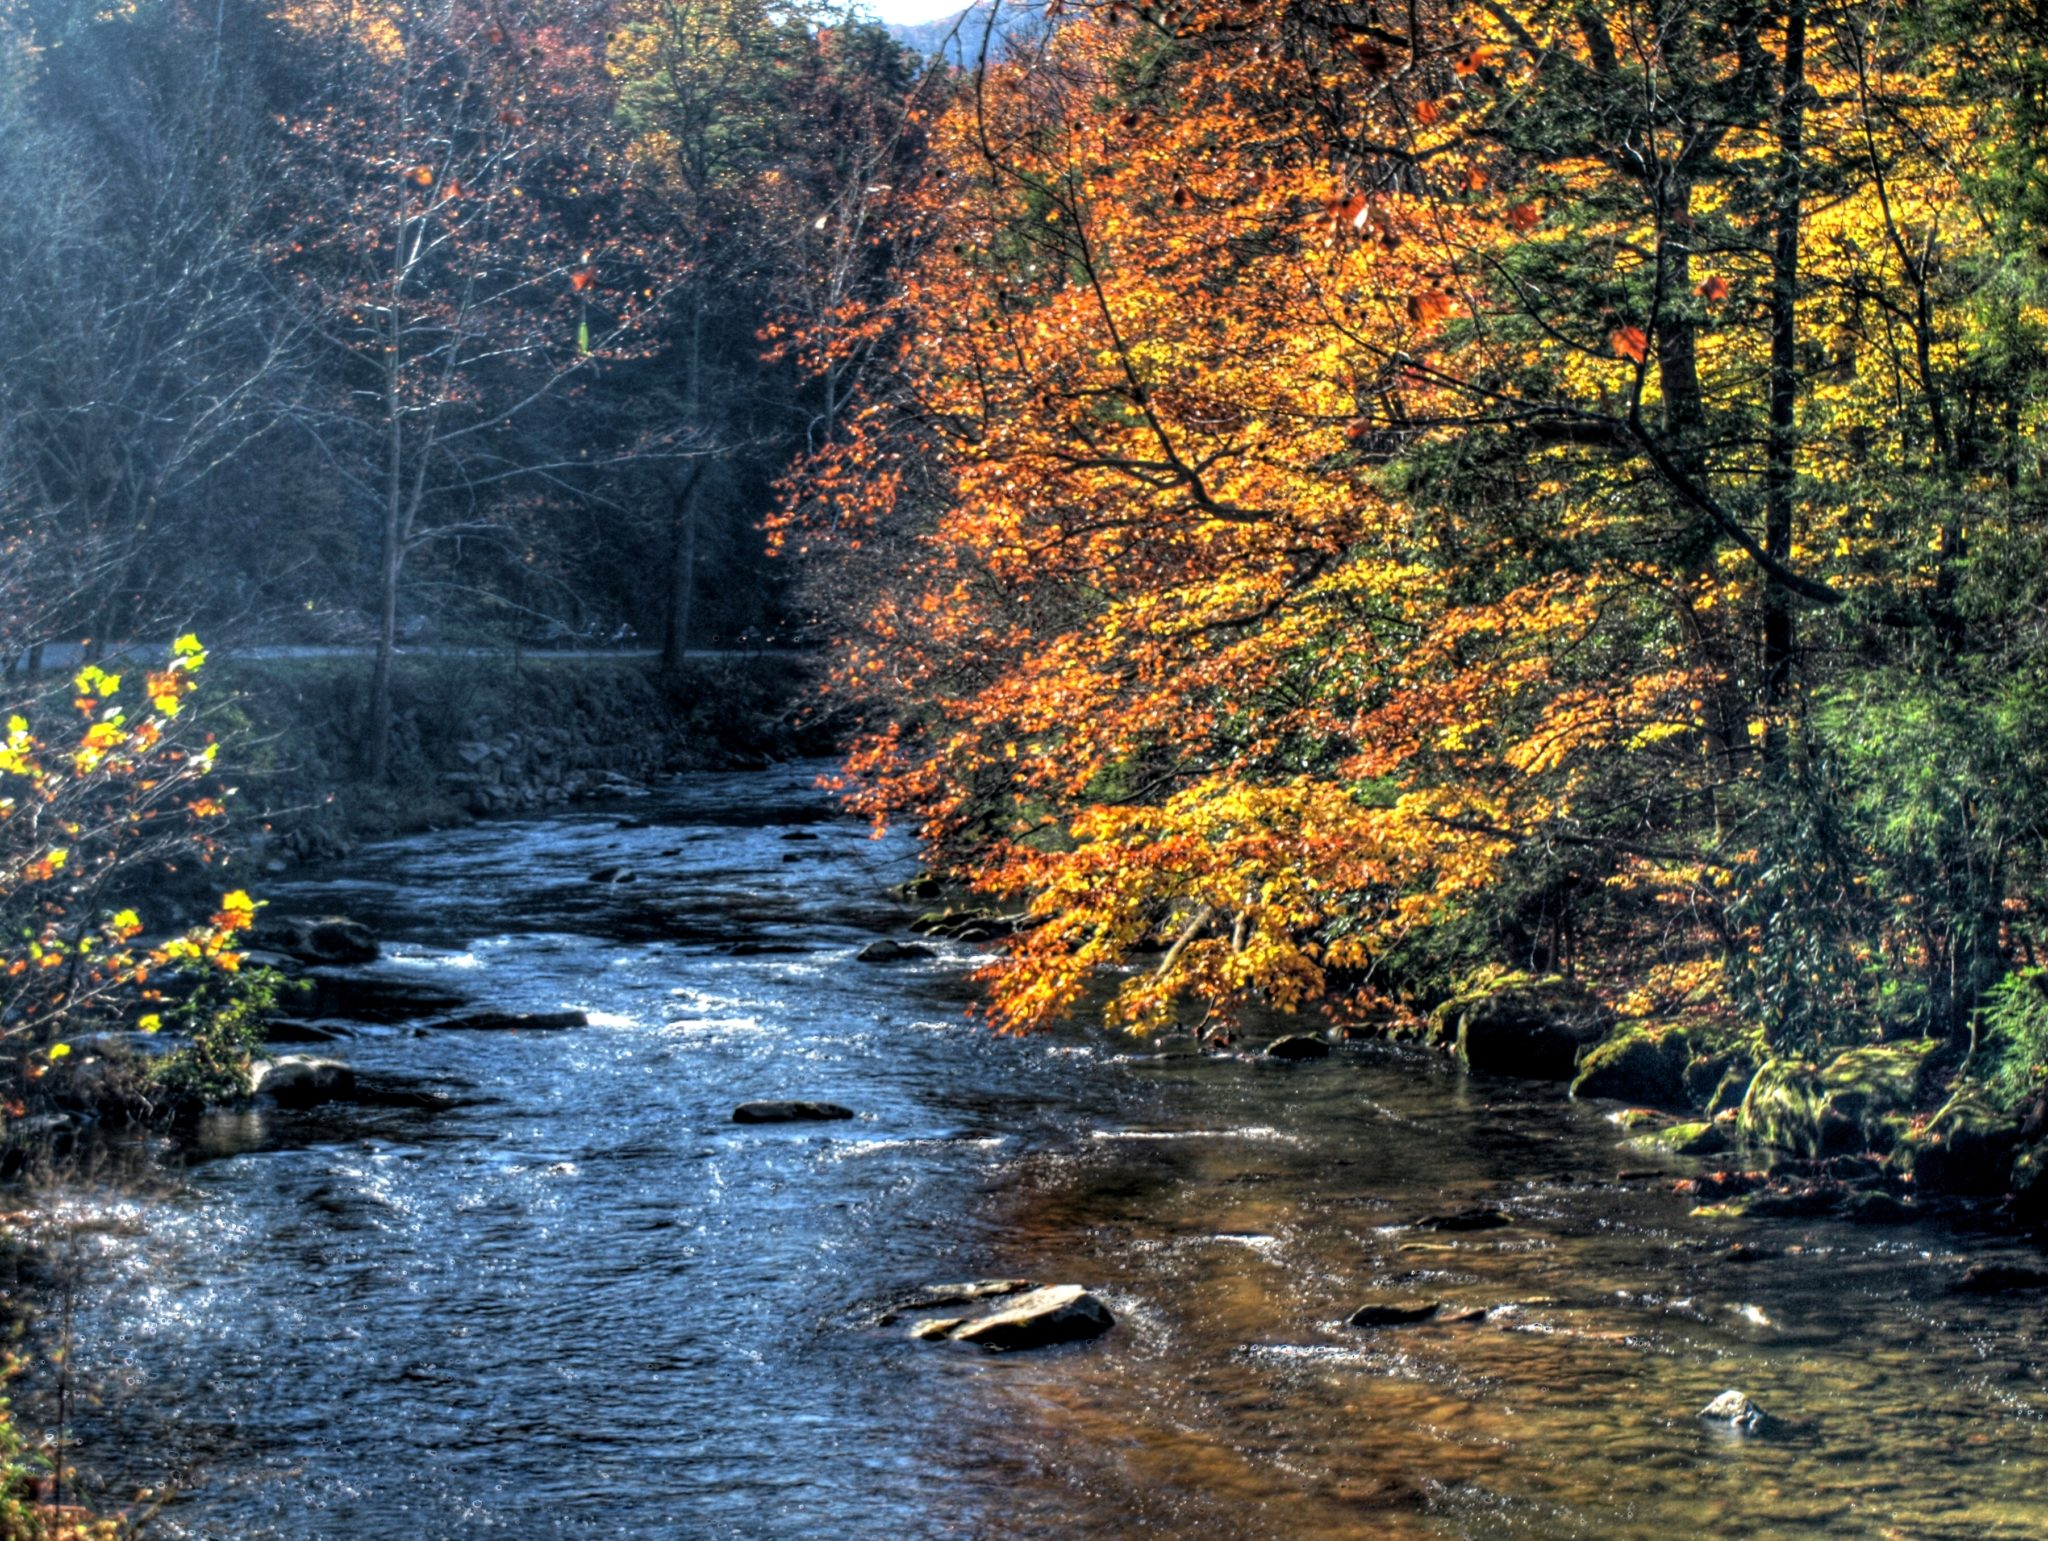 Mountain Stream in October